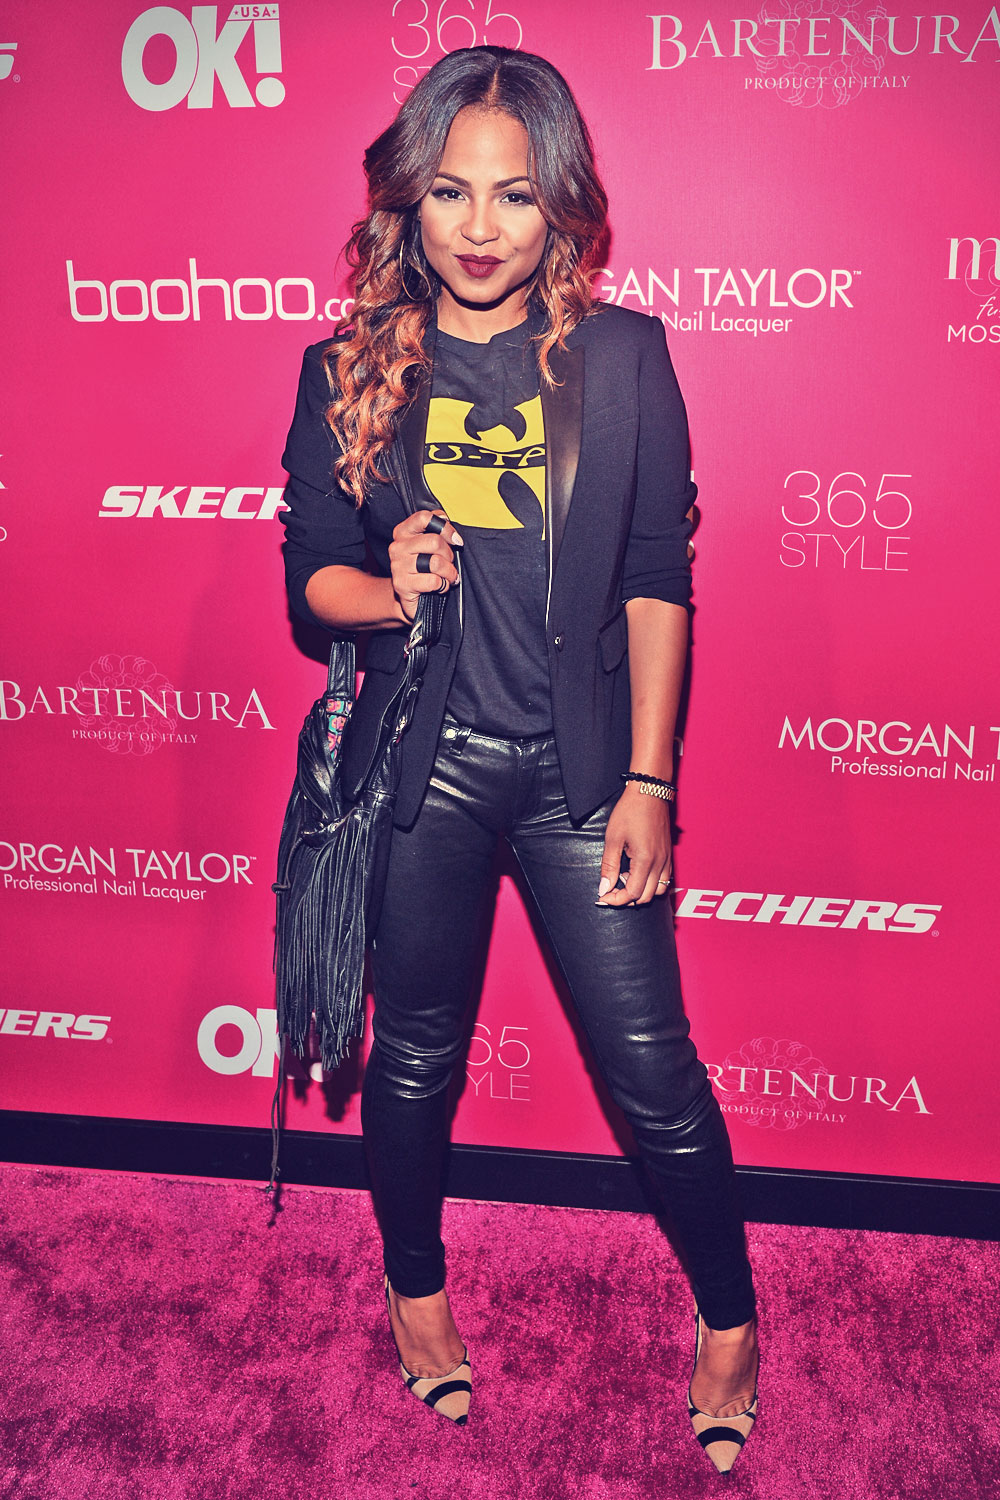 Christina Milian attends OK Fashion Week in New York